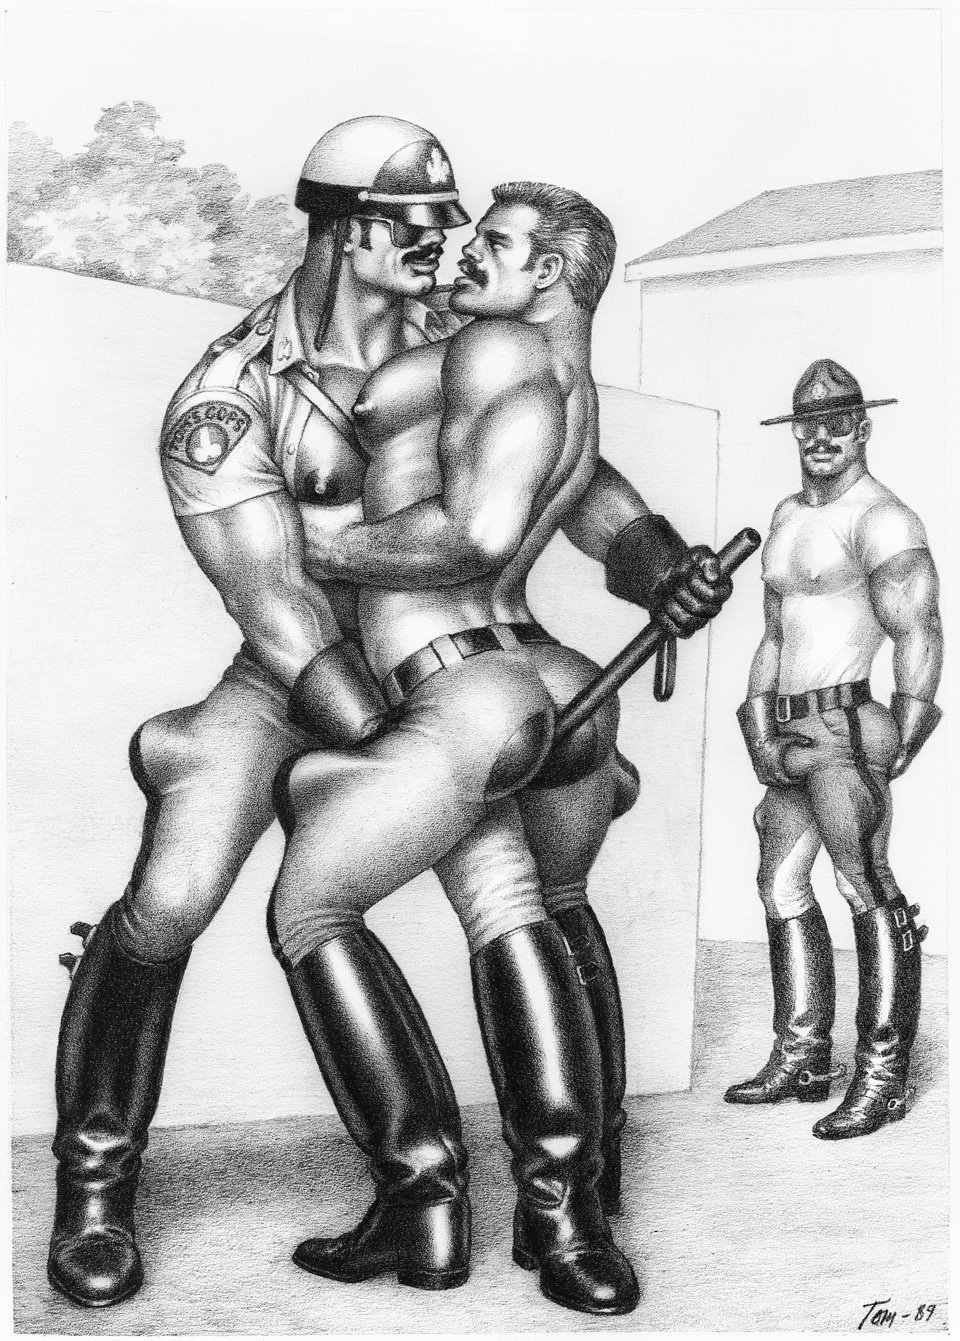 184a_tom_of_finland_cops_robbers_pi_48607_1605021612_id_1051843